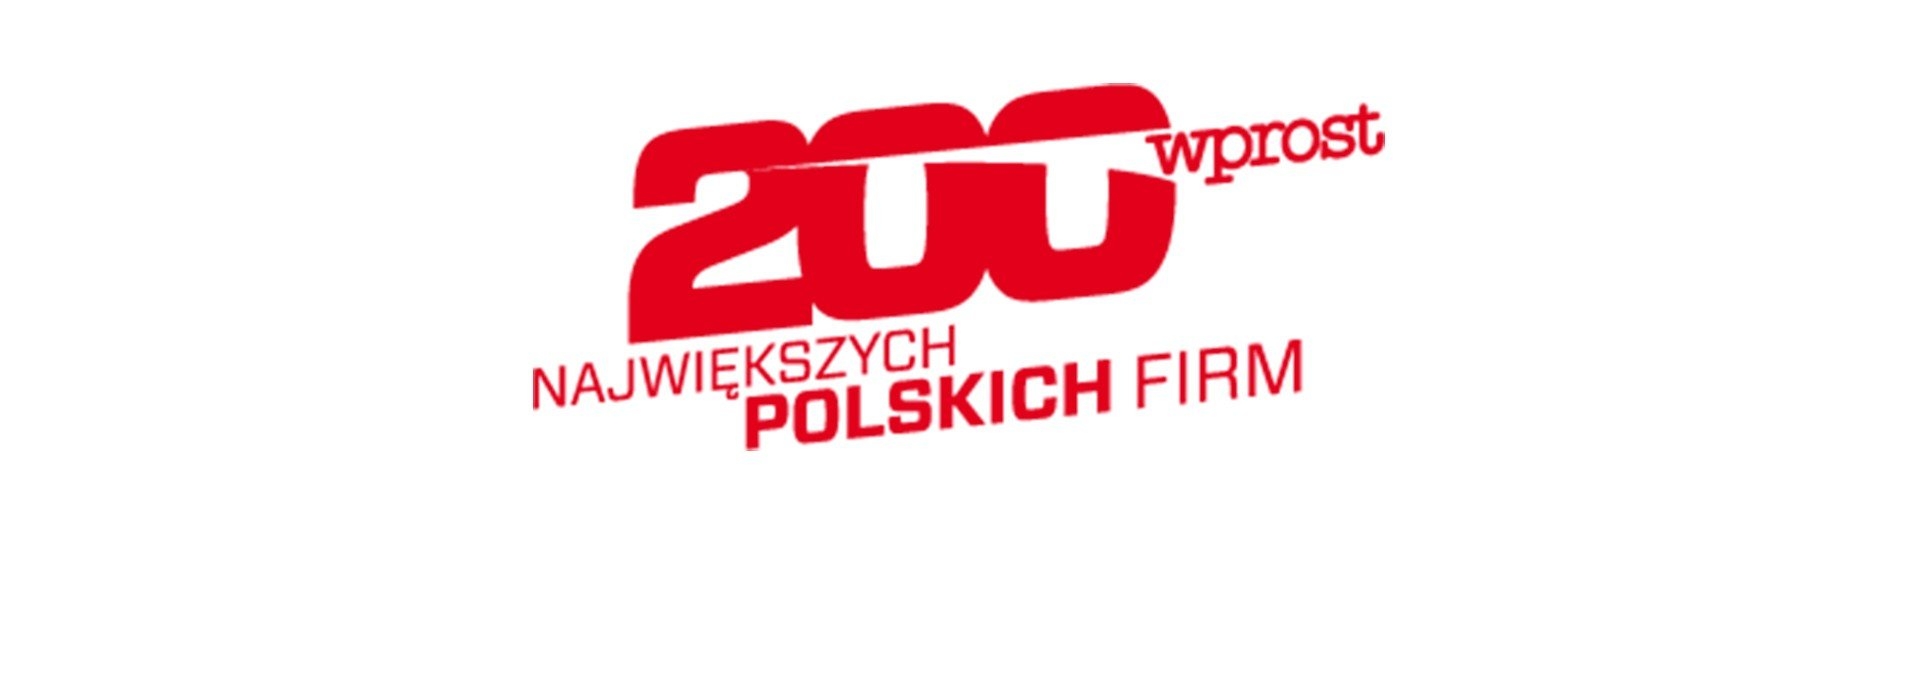 "Drutex advances in the ""Wprost"" list of the 200 biggest Polish companies"